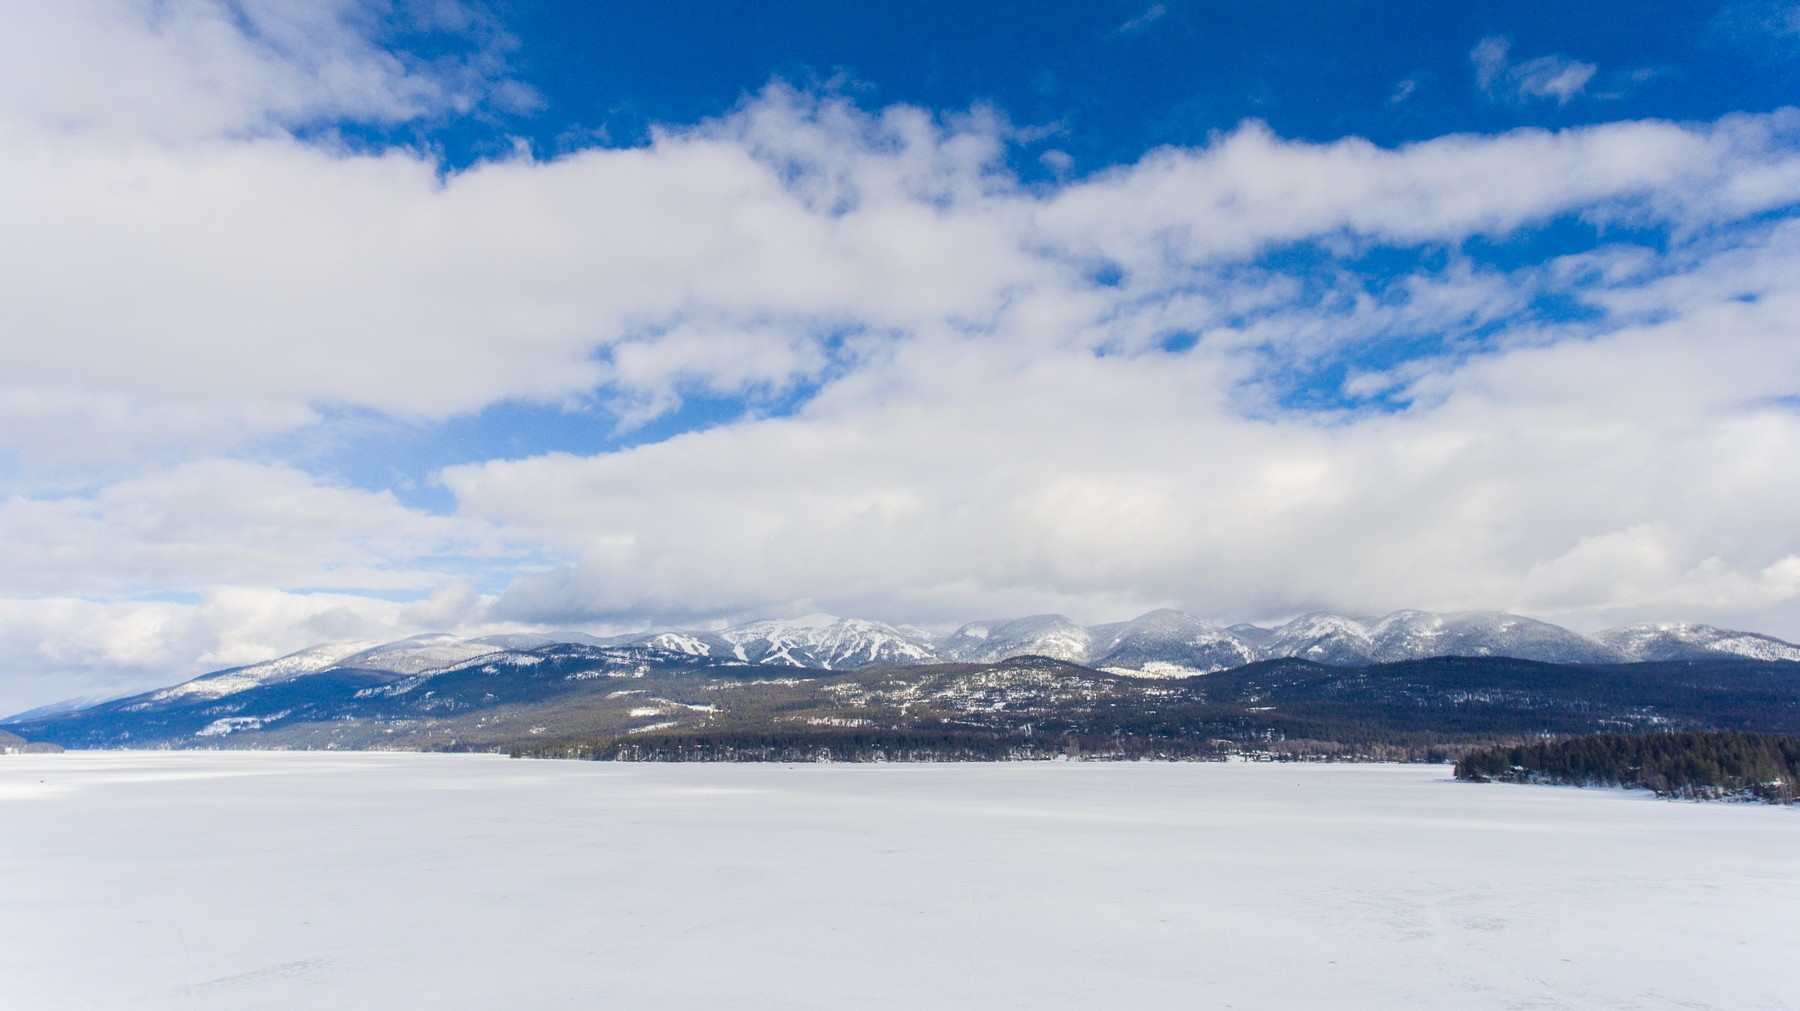 Single Family Home for Sale at 1290 Birch Point Drive 1290 Birch Point Dr Whitefish Lake, Whitefish, Montana, 59937 United States